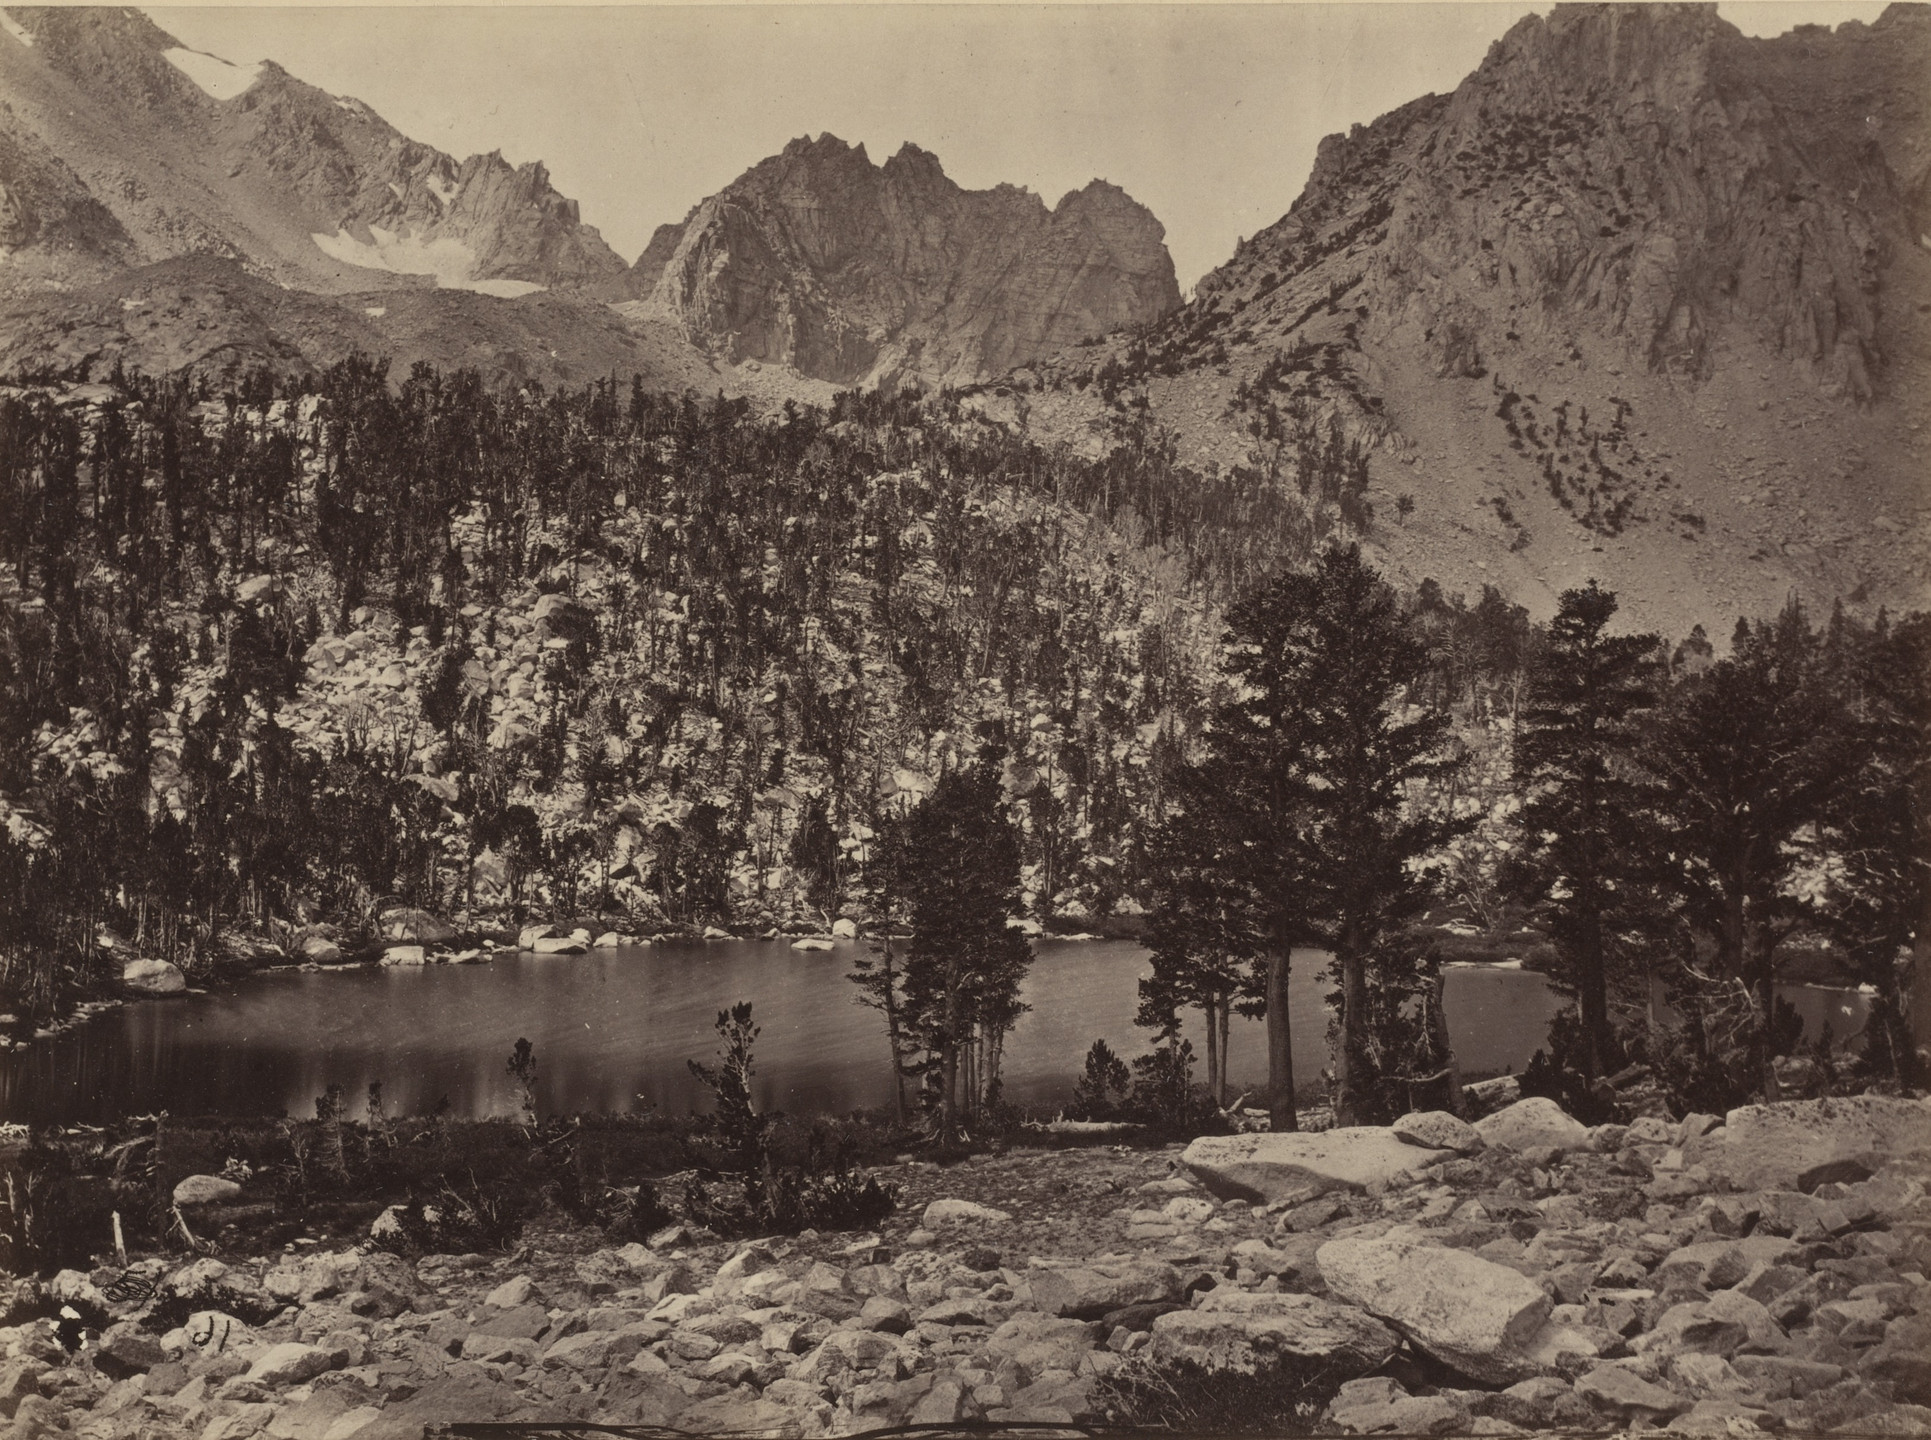 Timothy O'Sullivan. Alpine Lake in the Sierra Nevada, California. Seasons of 1871, 1872 and 1873